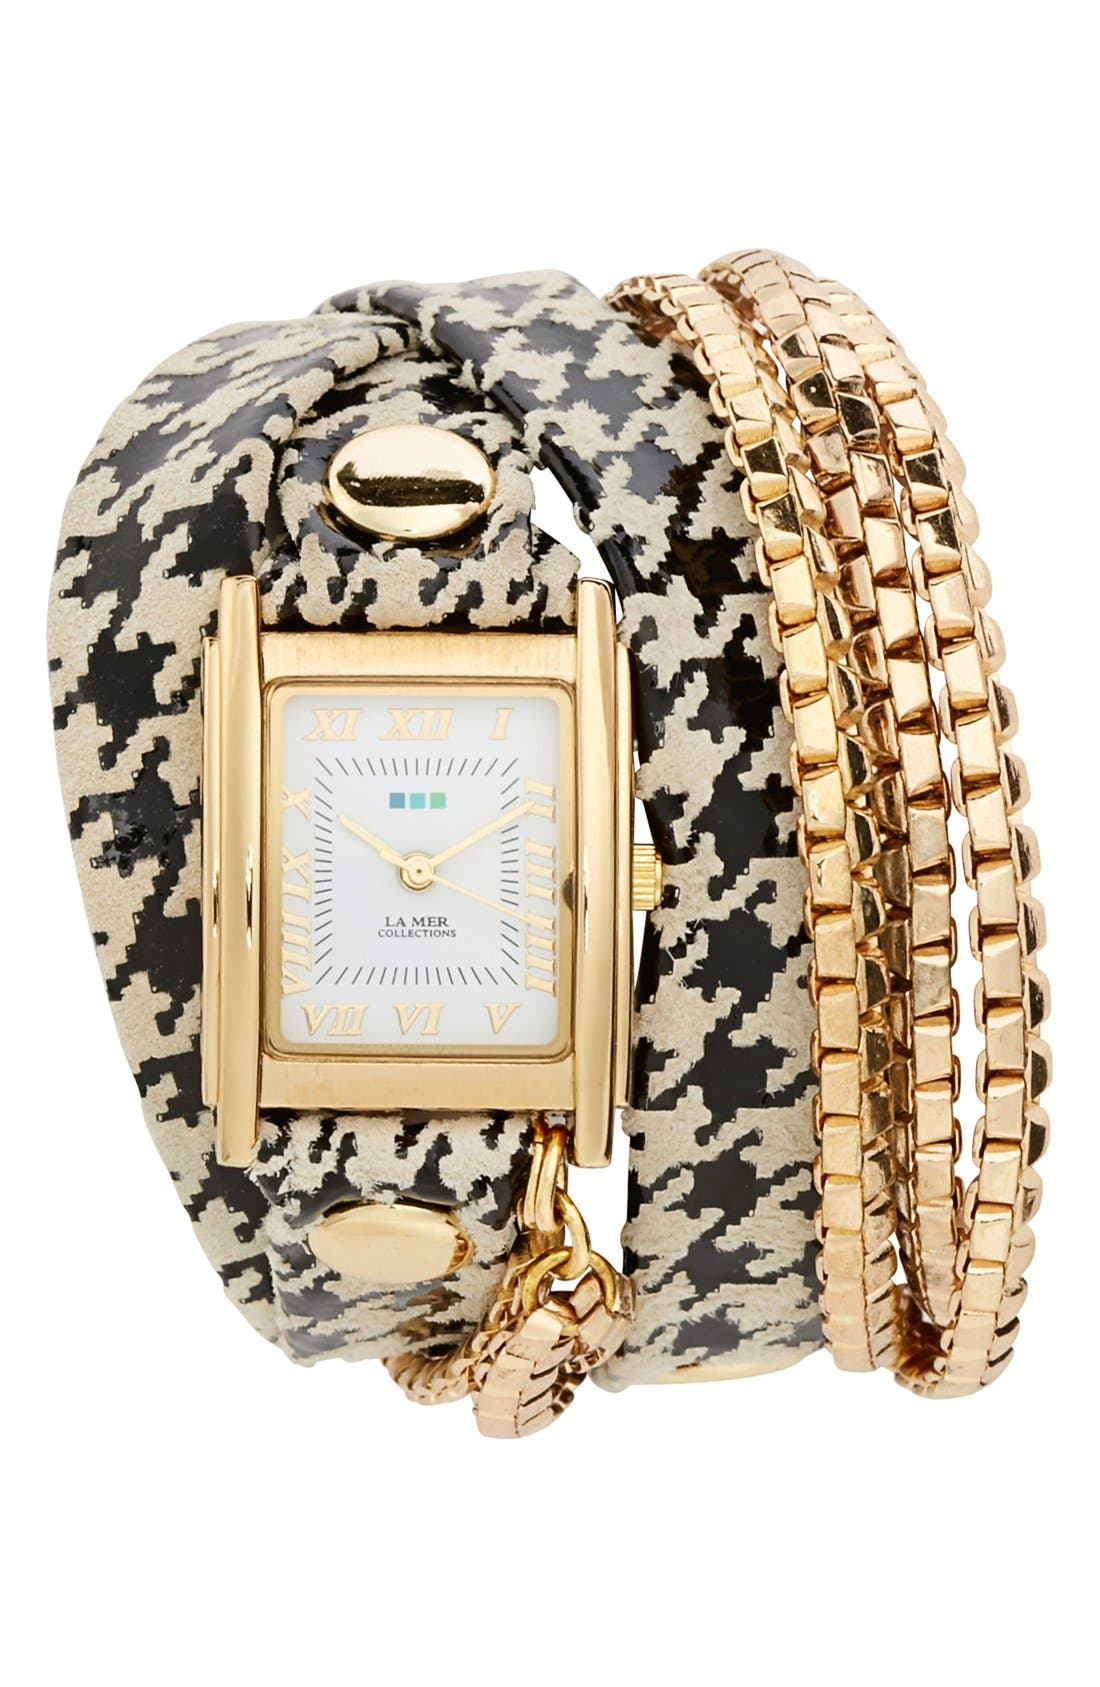 Main Image - La Mer Collections Square Houndstooth Wrap Watch, 22mm